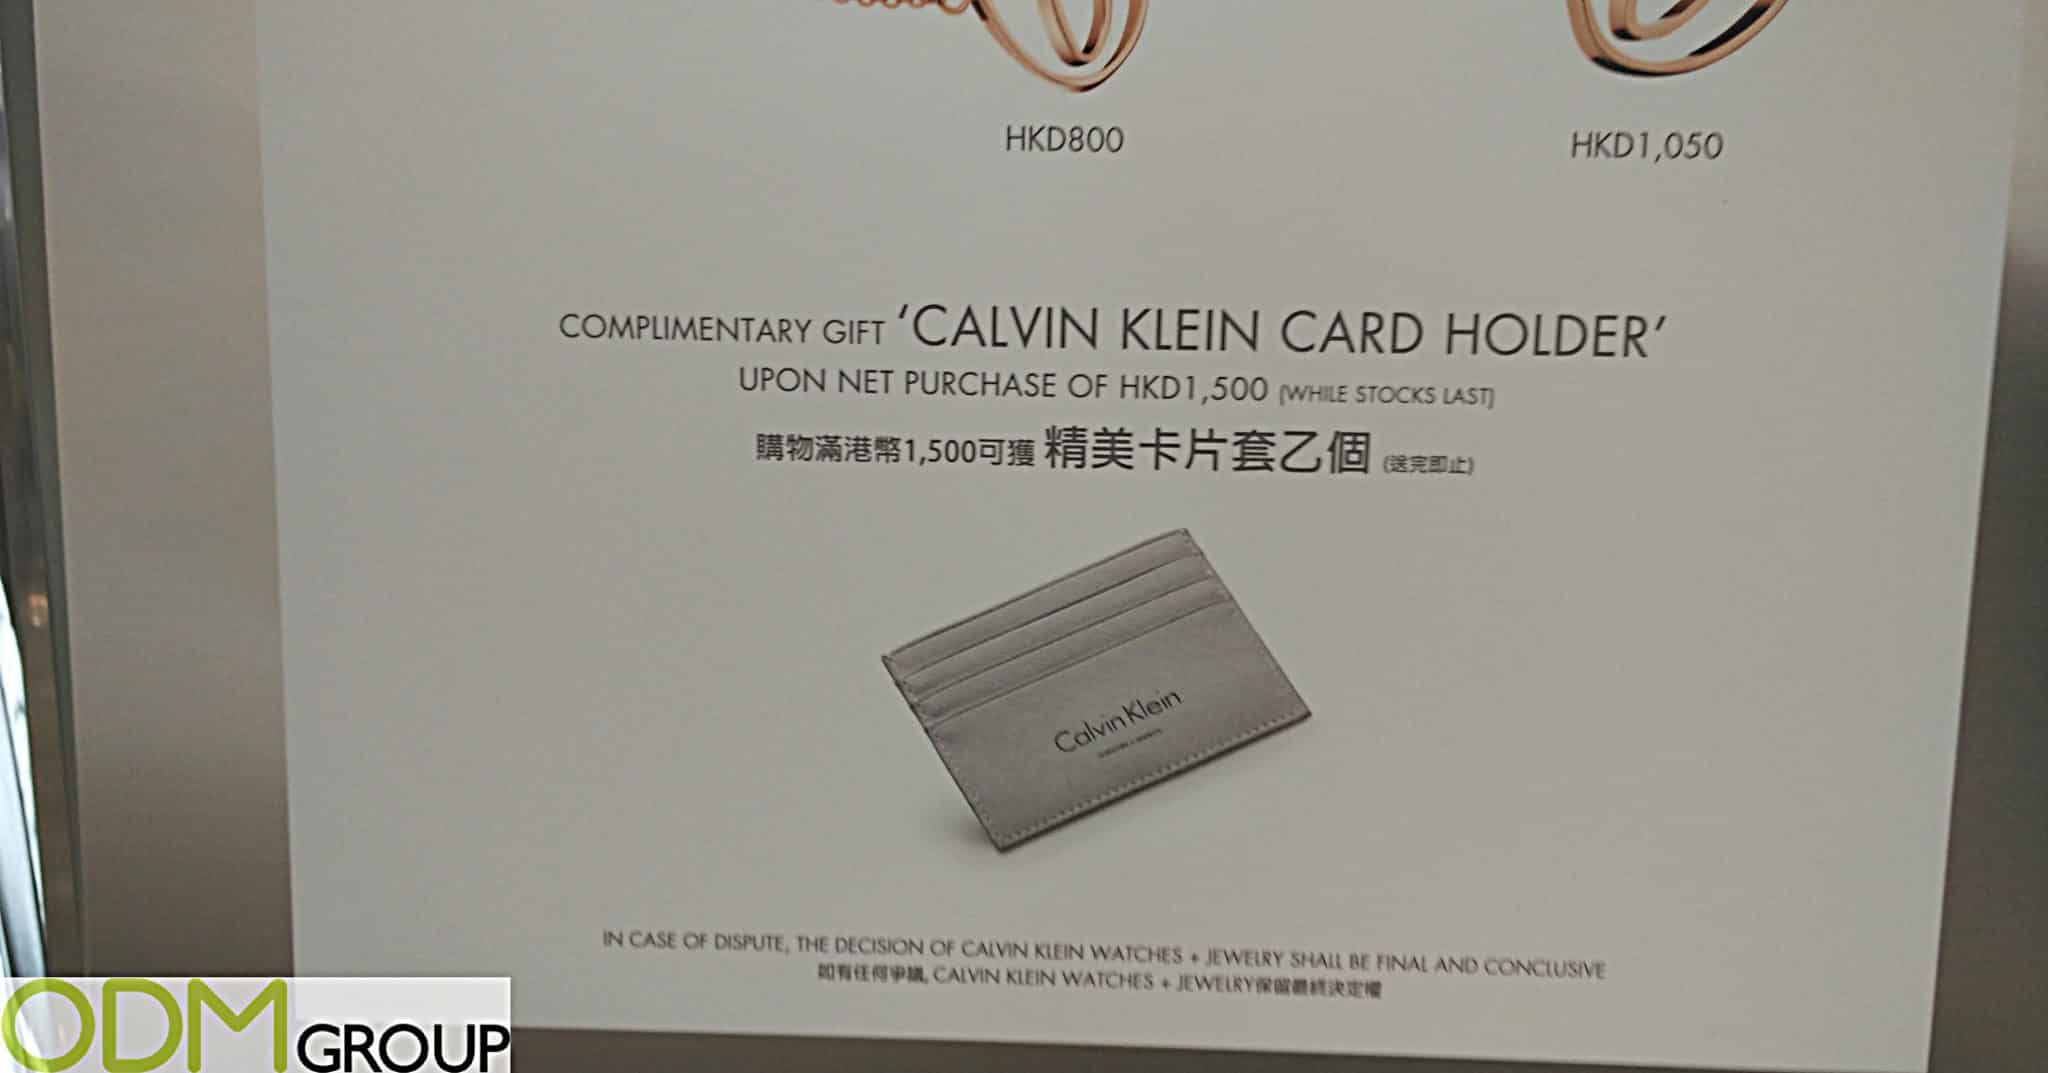 Branded Card Holder as Gift by Calvin Klein